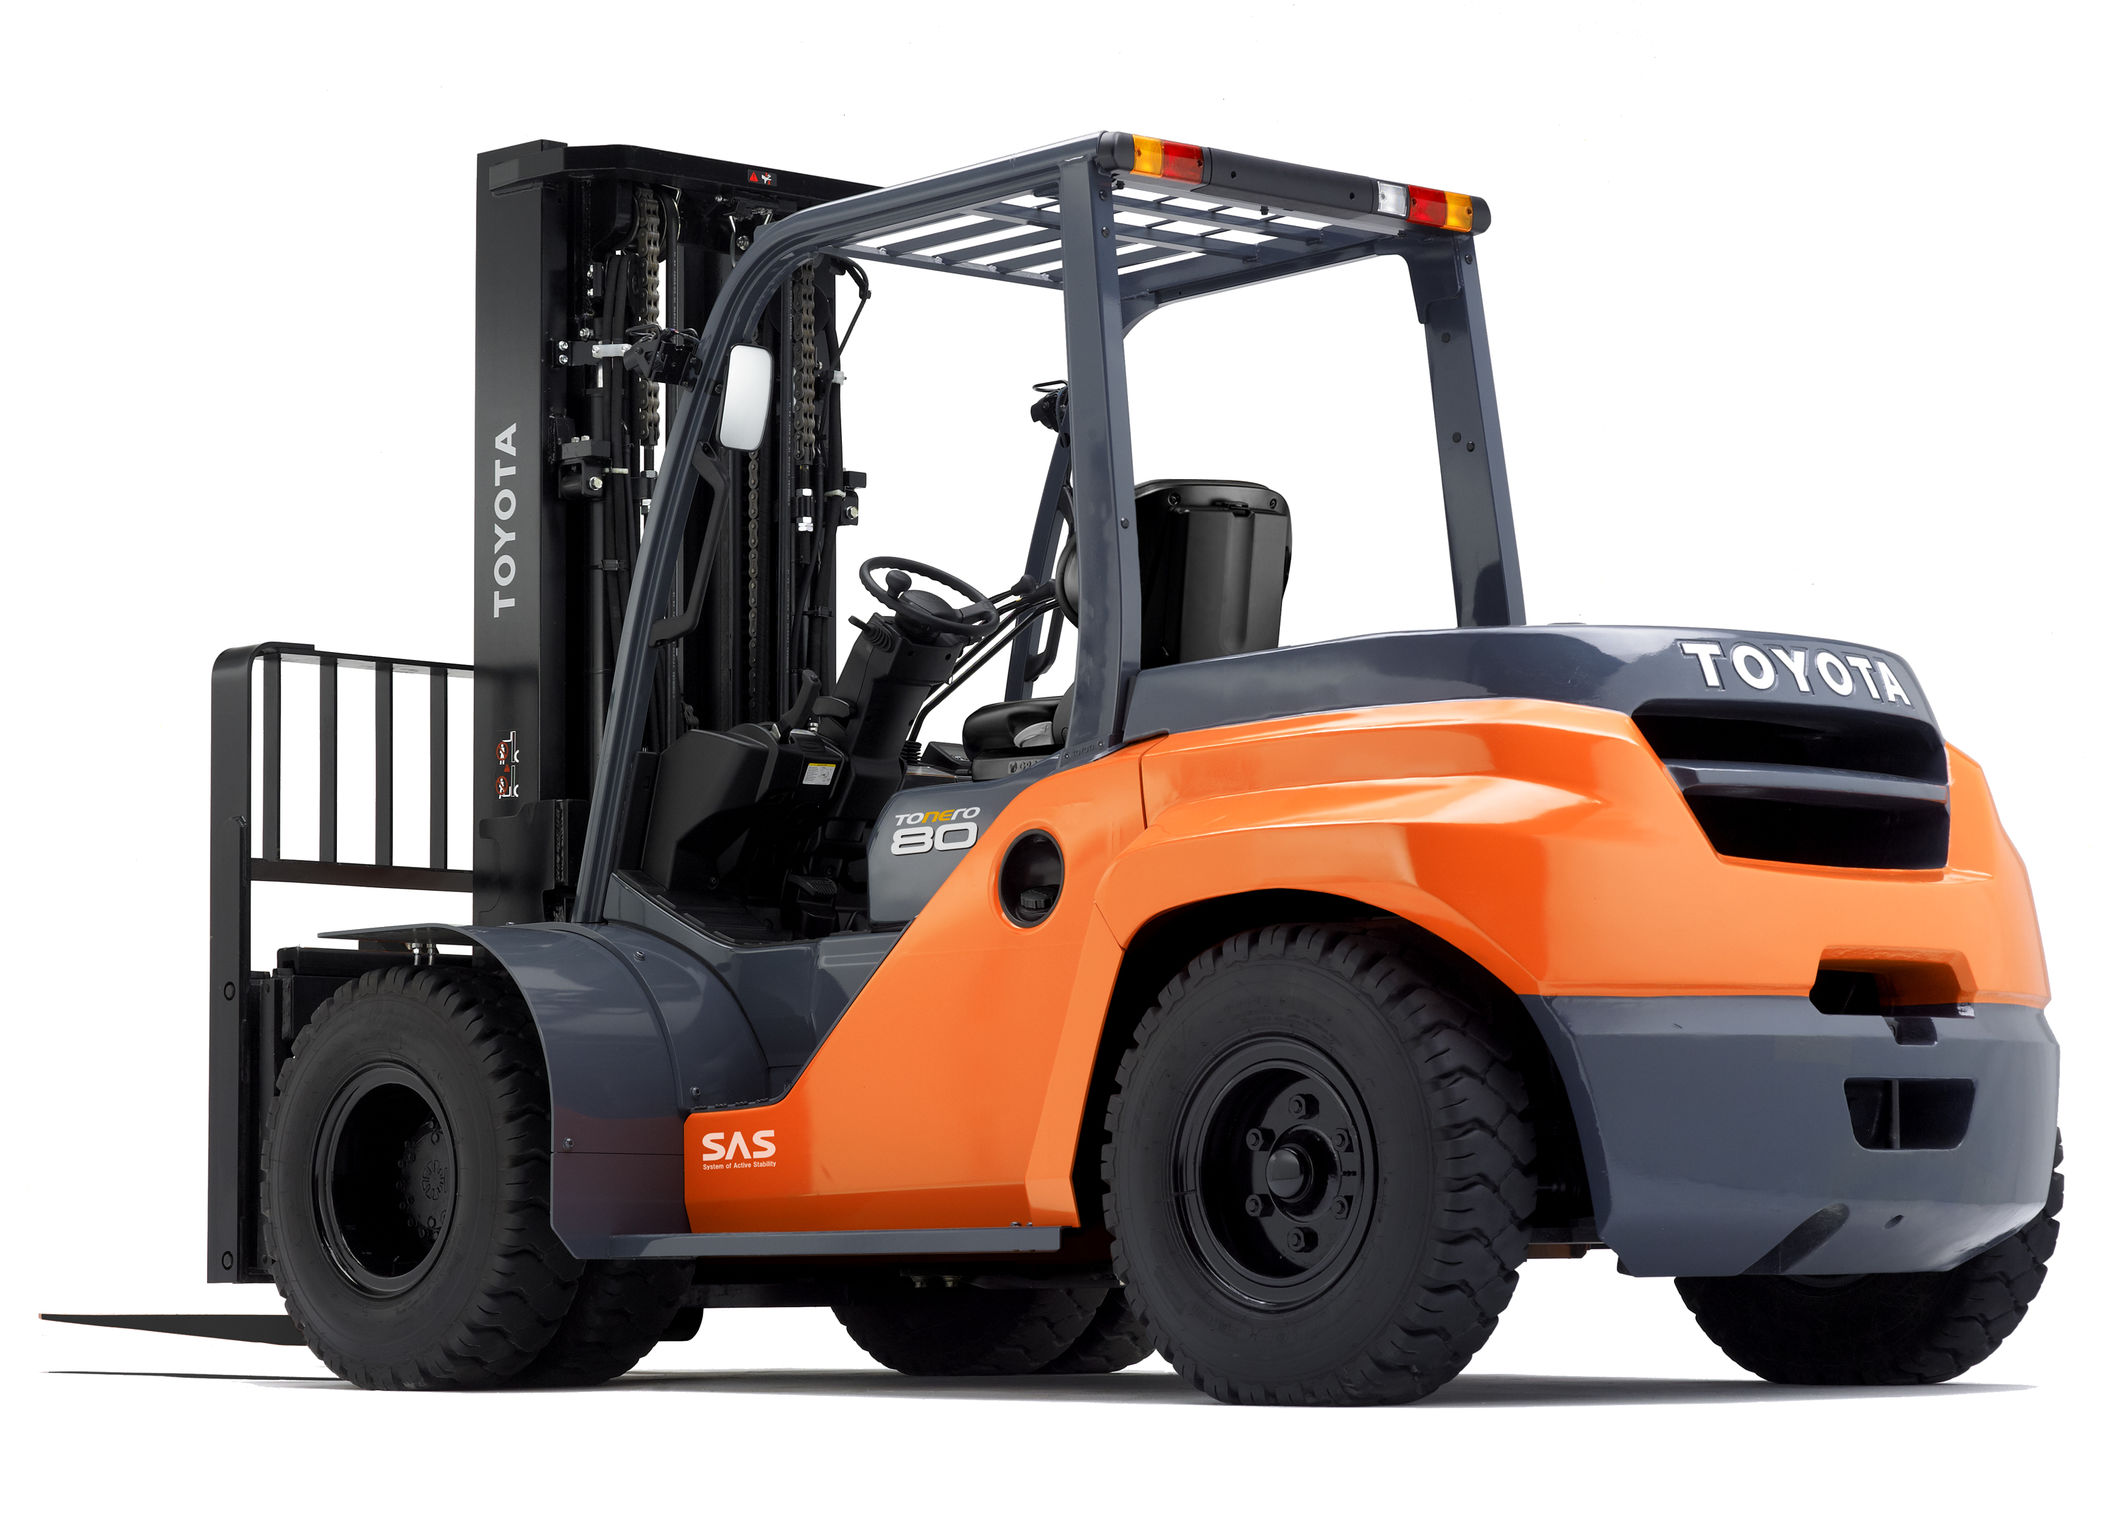 Toyota 3 5 8ton Forklift Entry If World Design Guide